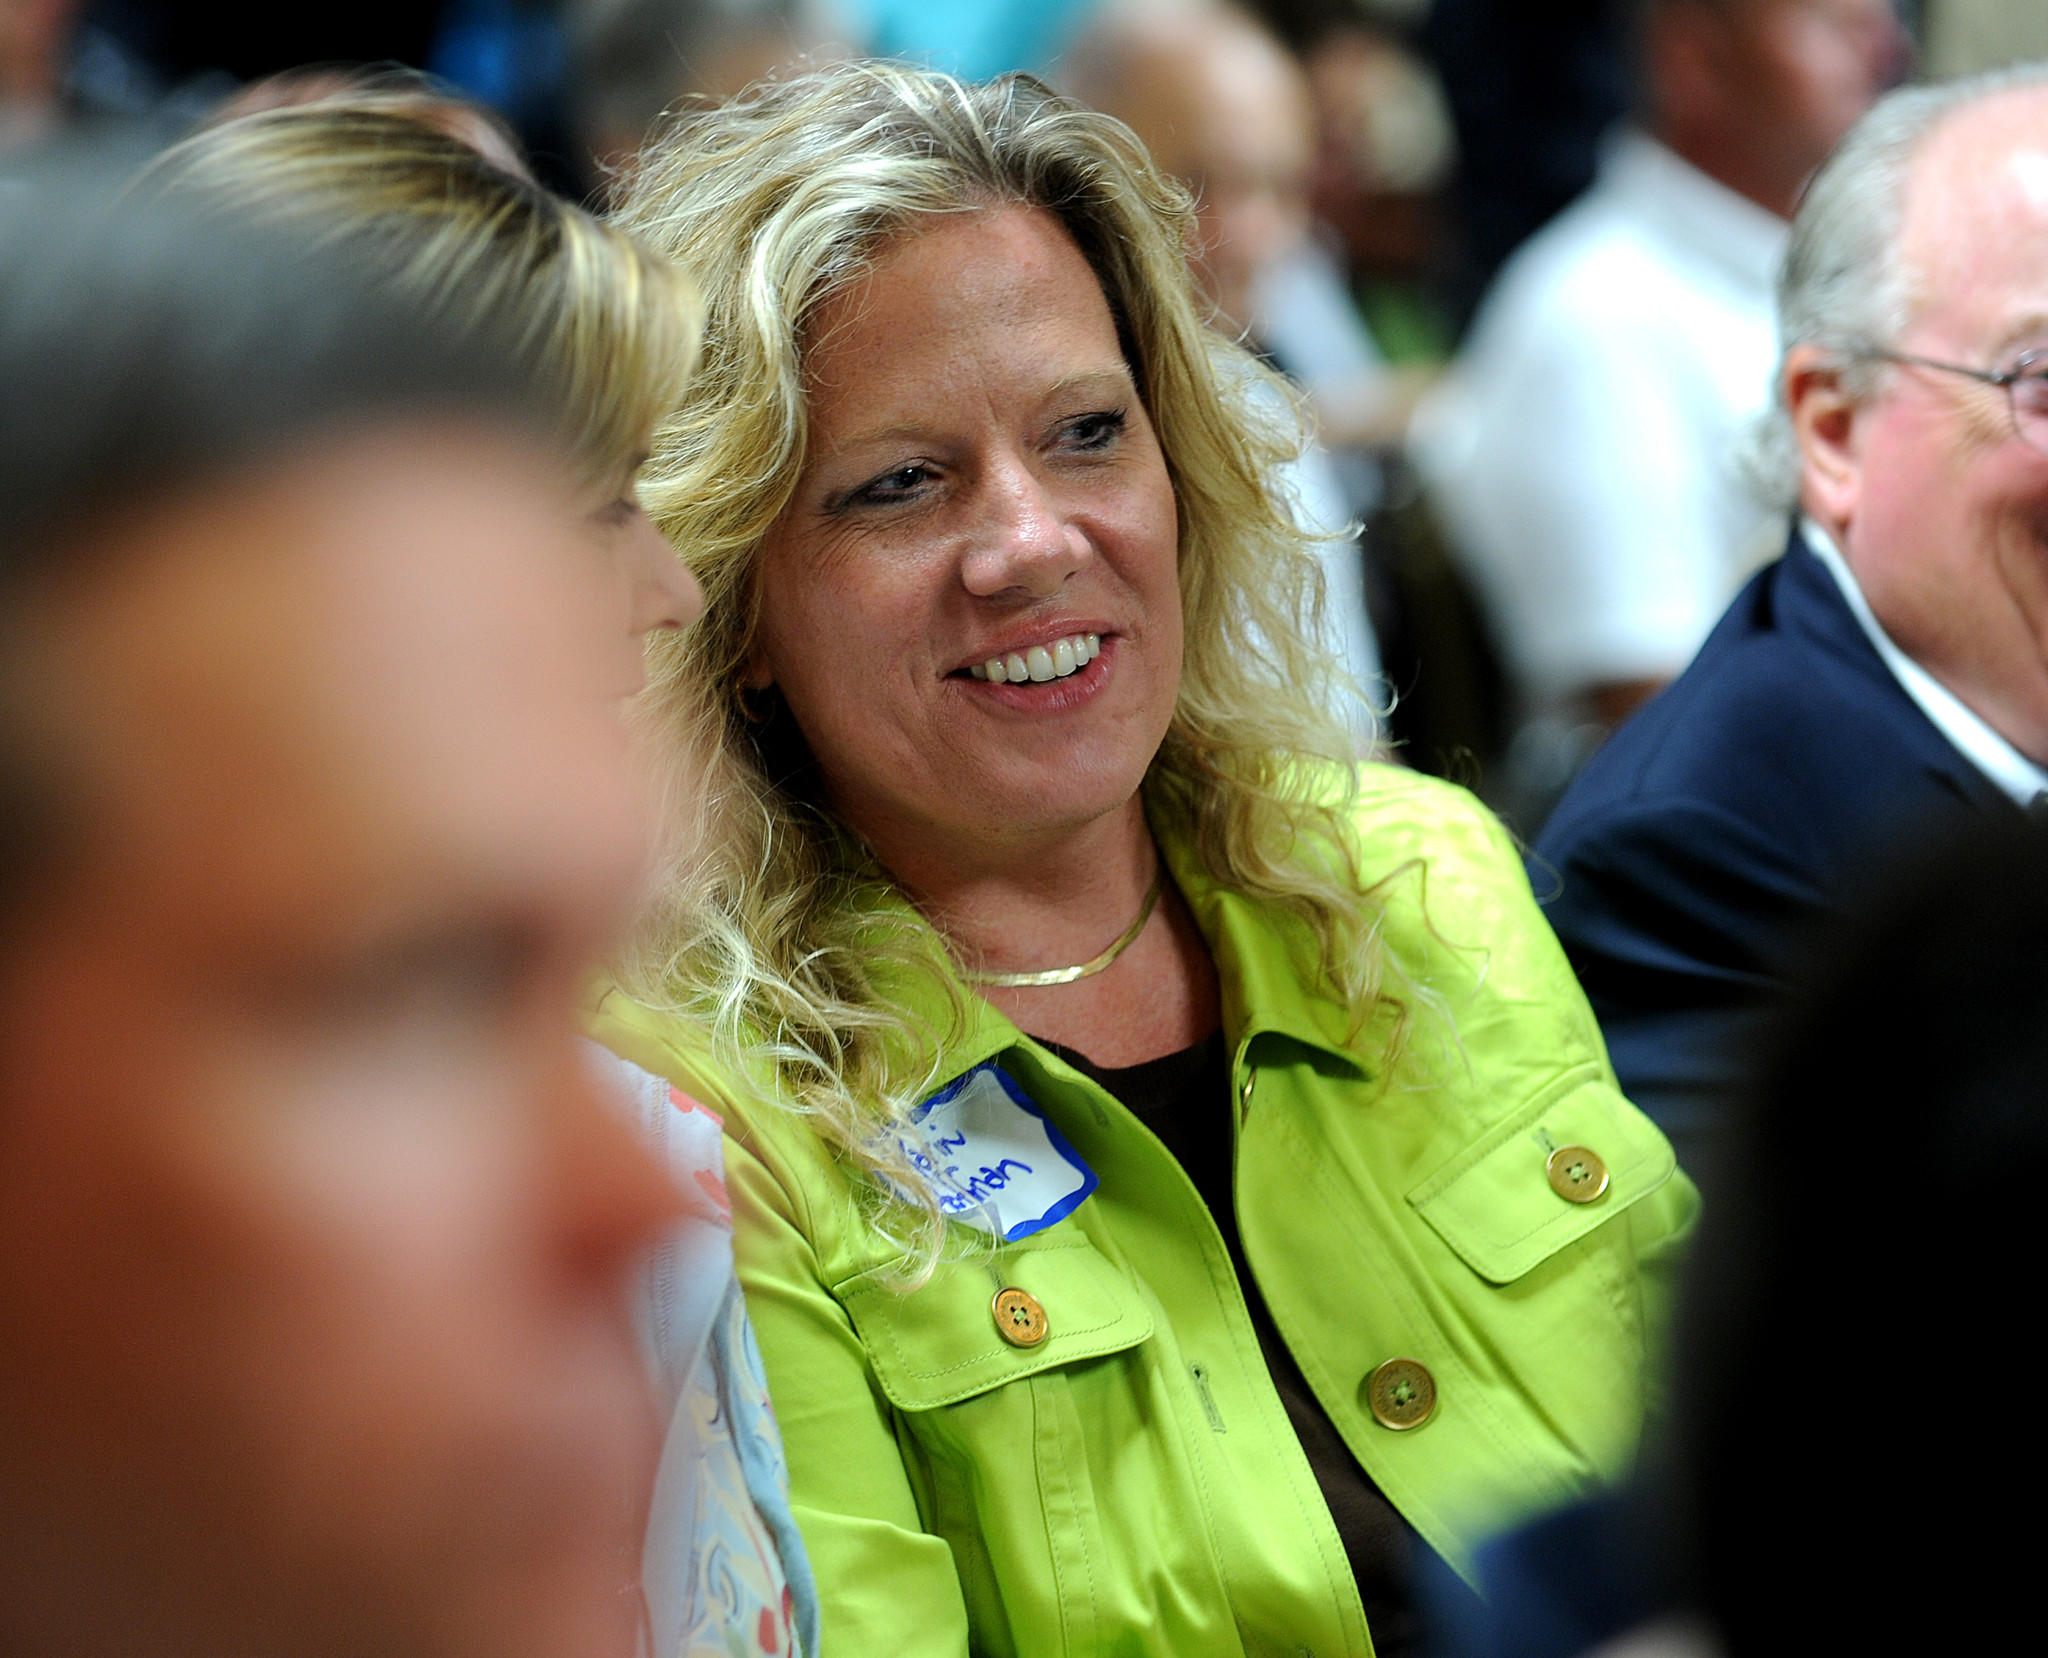 Karin Hoffman, a candidate from the tea party movement was hoping to take over the chairmanship of the Broward Republican Party in 2010, but Cindy Guerra was voted the new chair. Carline Jean, Sun Sentinel